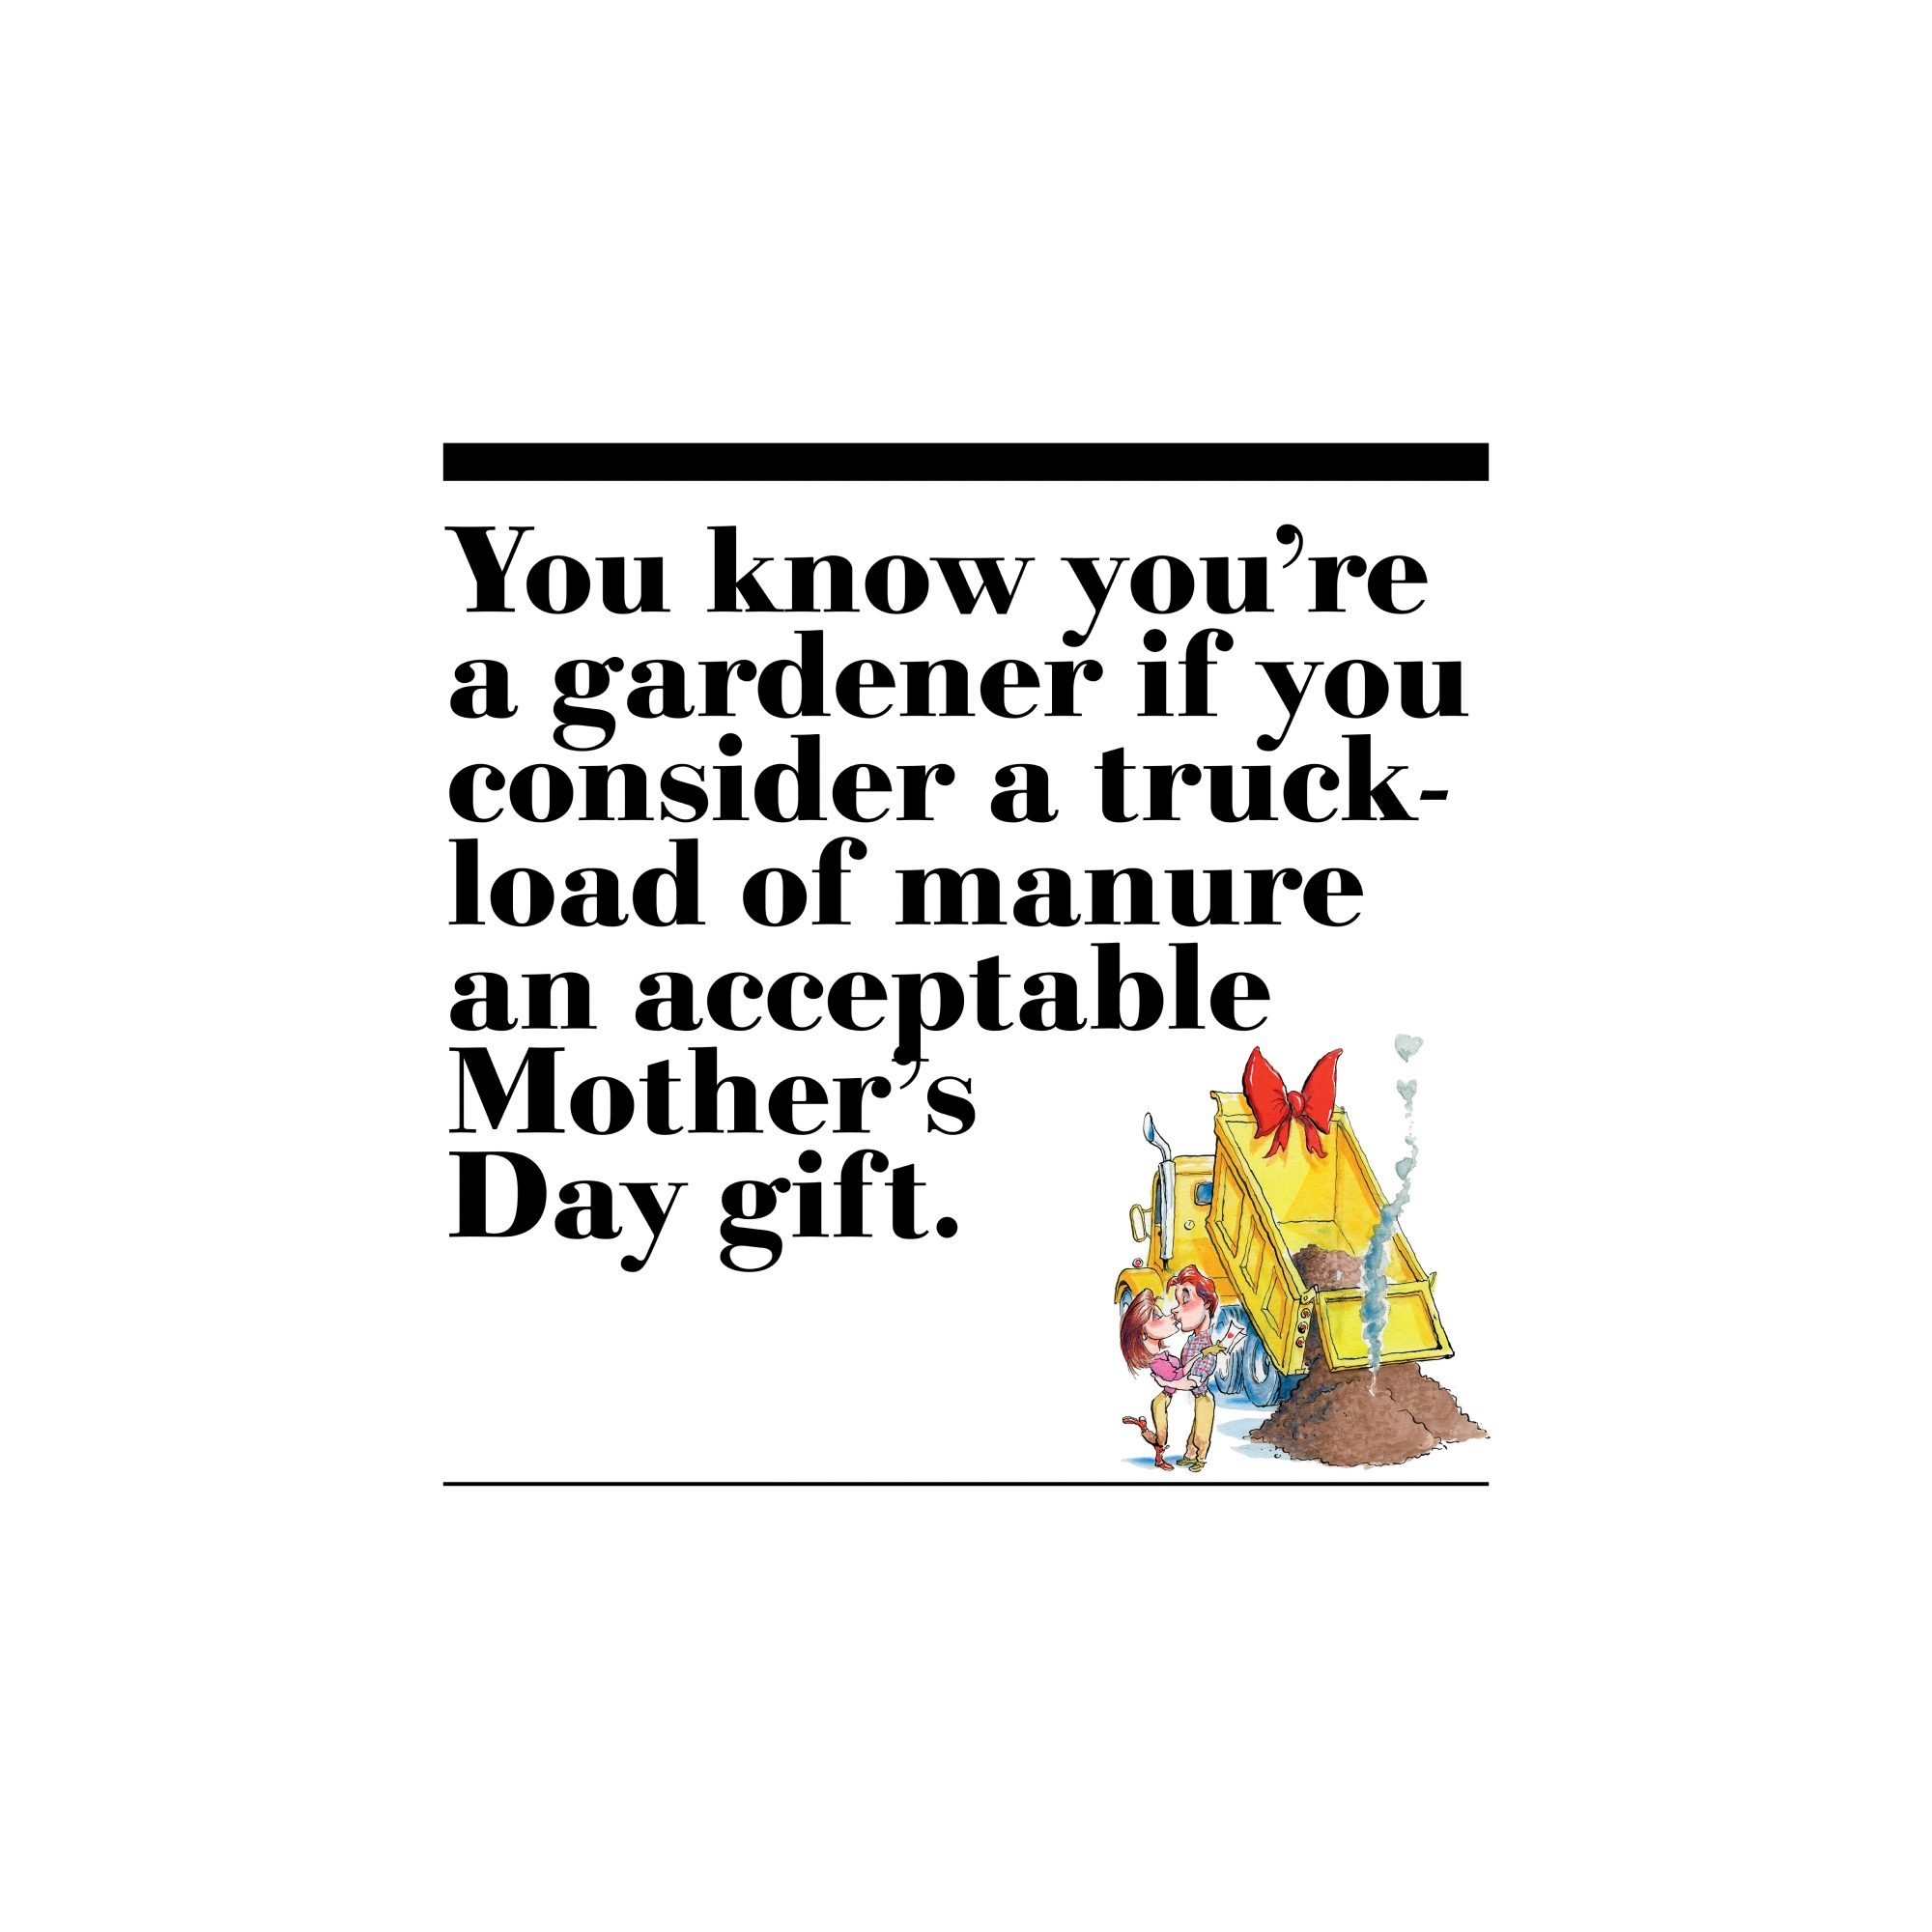 24. You know you're a gardener if you consider a truckload of manure an acceptable Mother's Day gift.